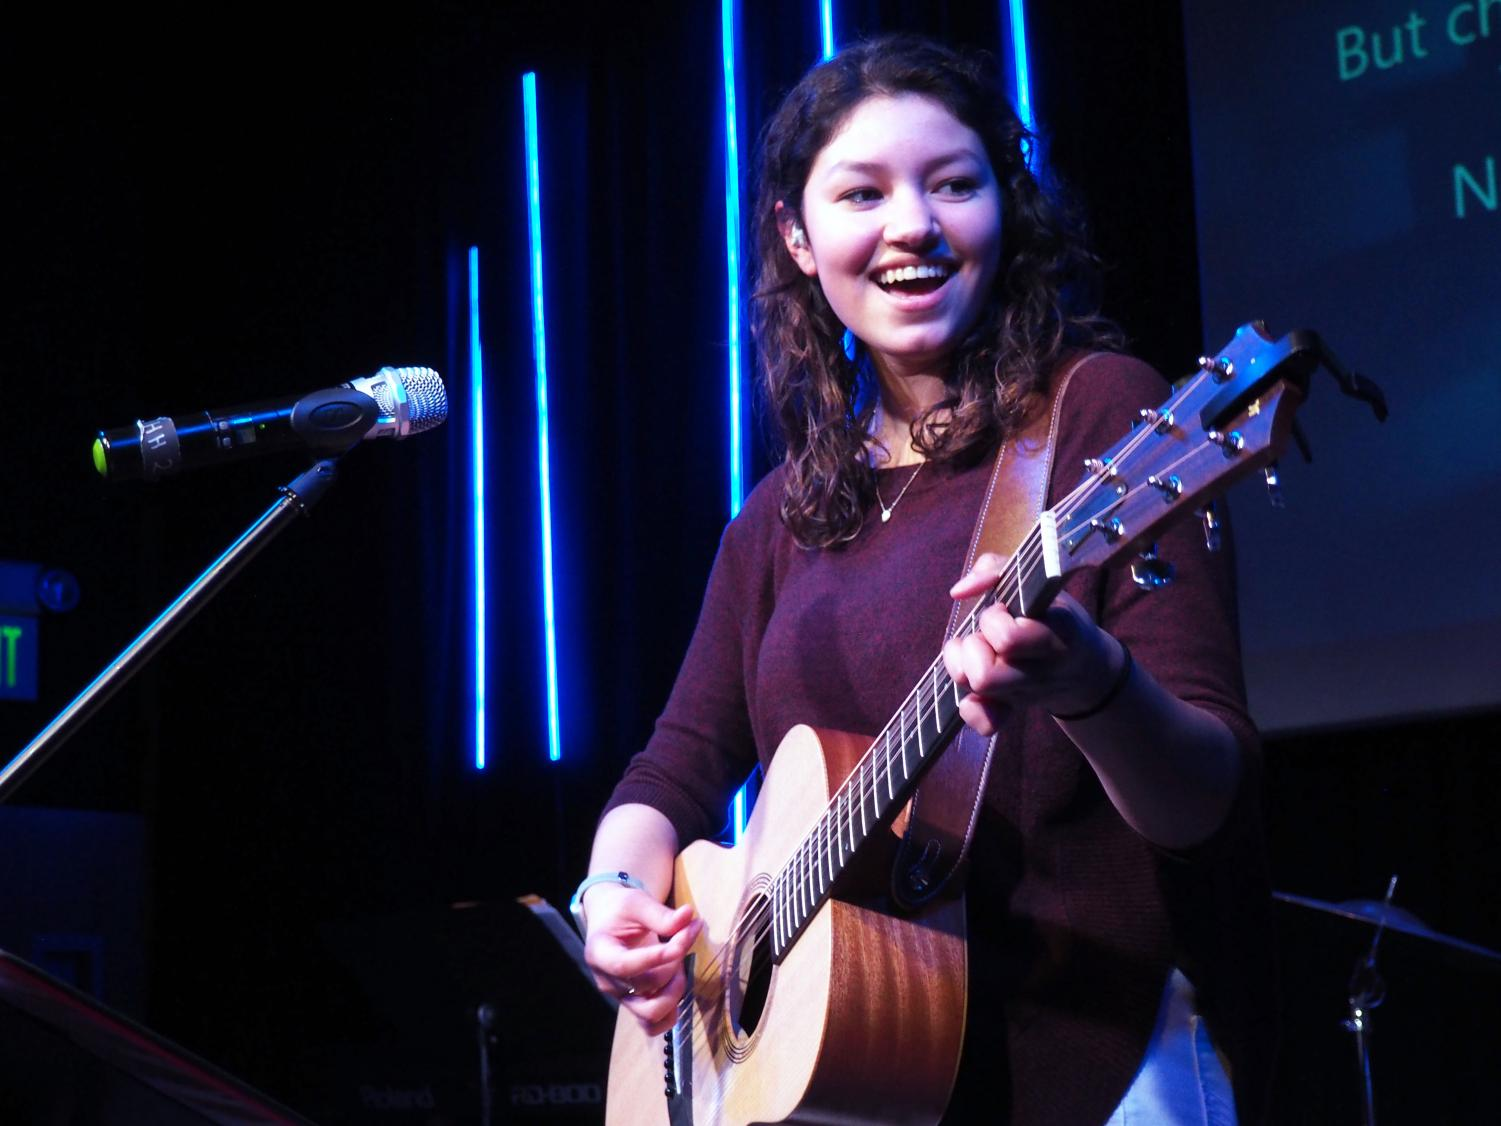 Junior Victoria Contreras plays guitar and sings during worship at Edebrook Church March 20. Contreras performs